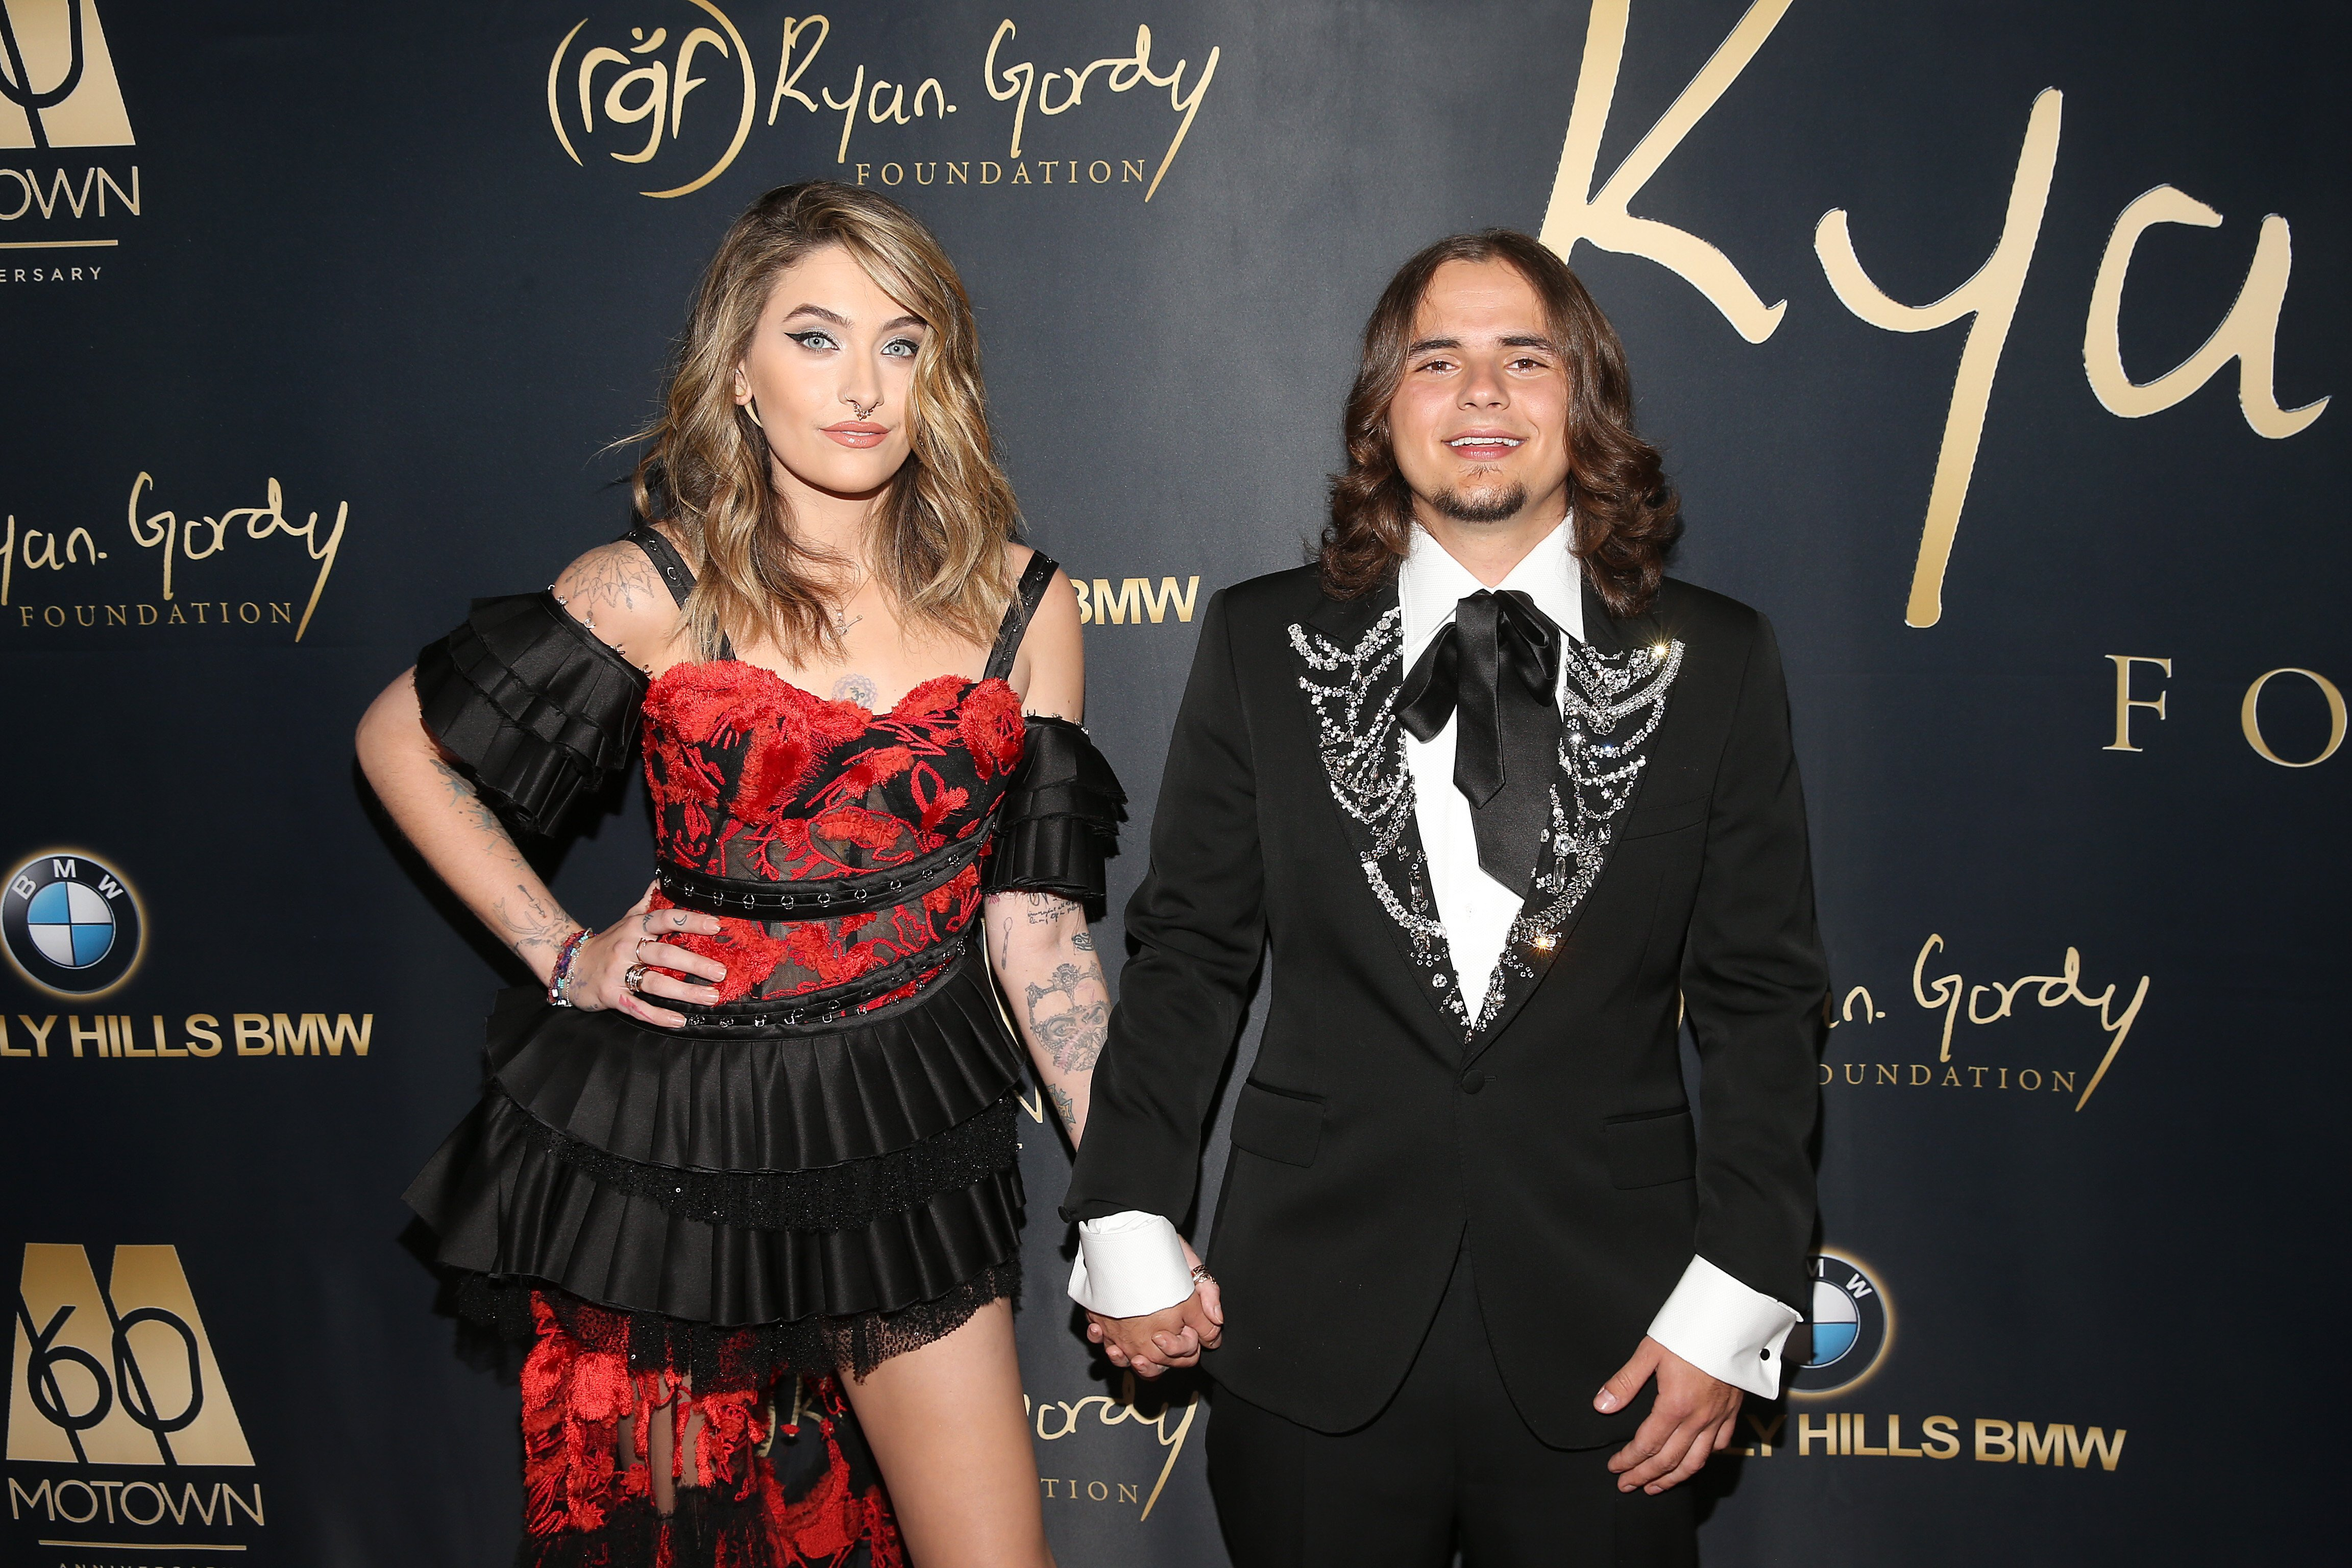 Paris Jackson and Prince Jackson at the Ryan Gordy Foundation's sixty years anniversary Gala | Photo: Getty Images